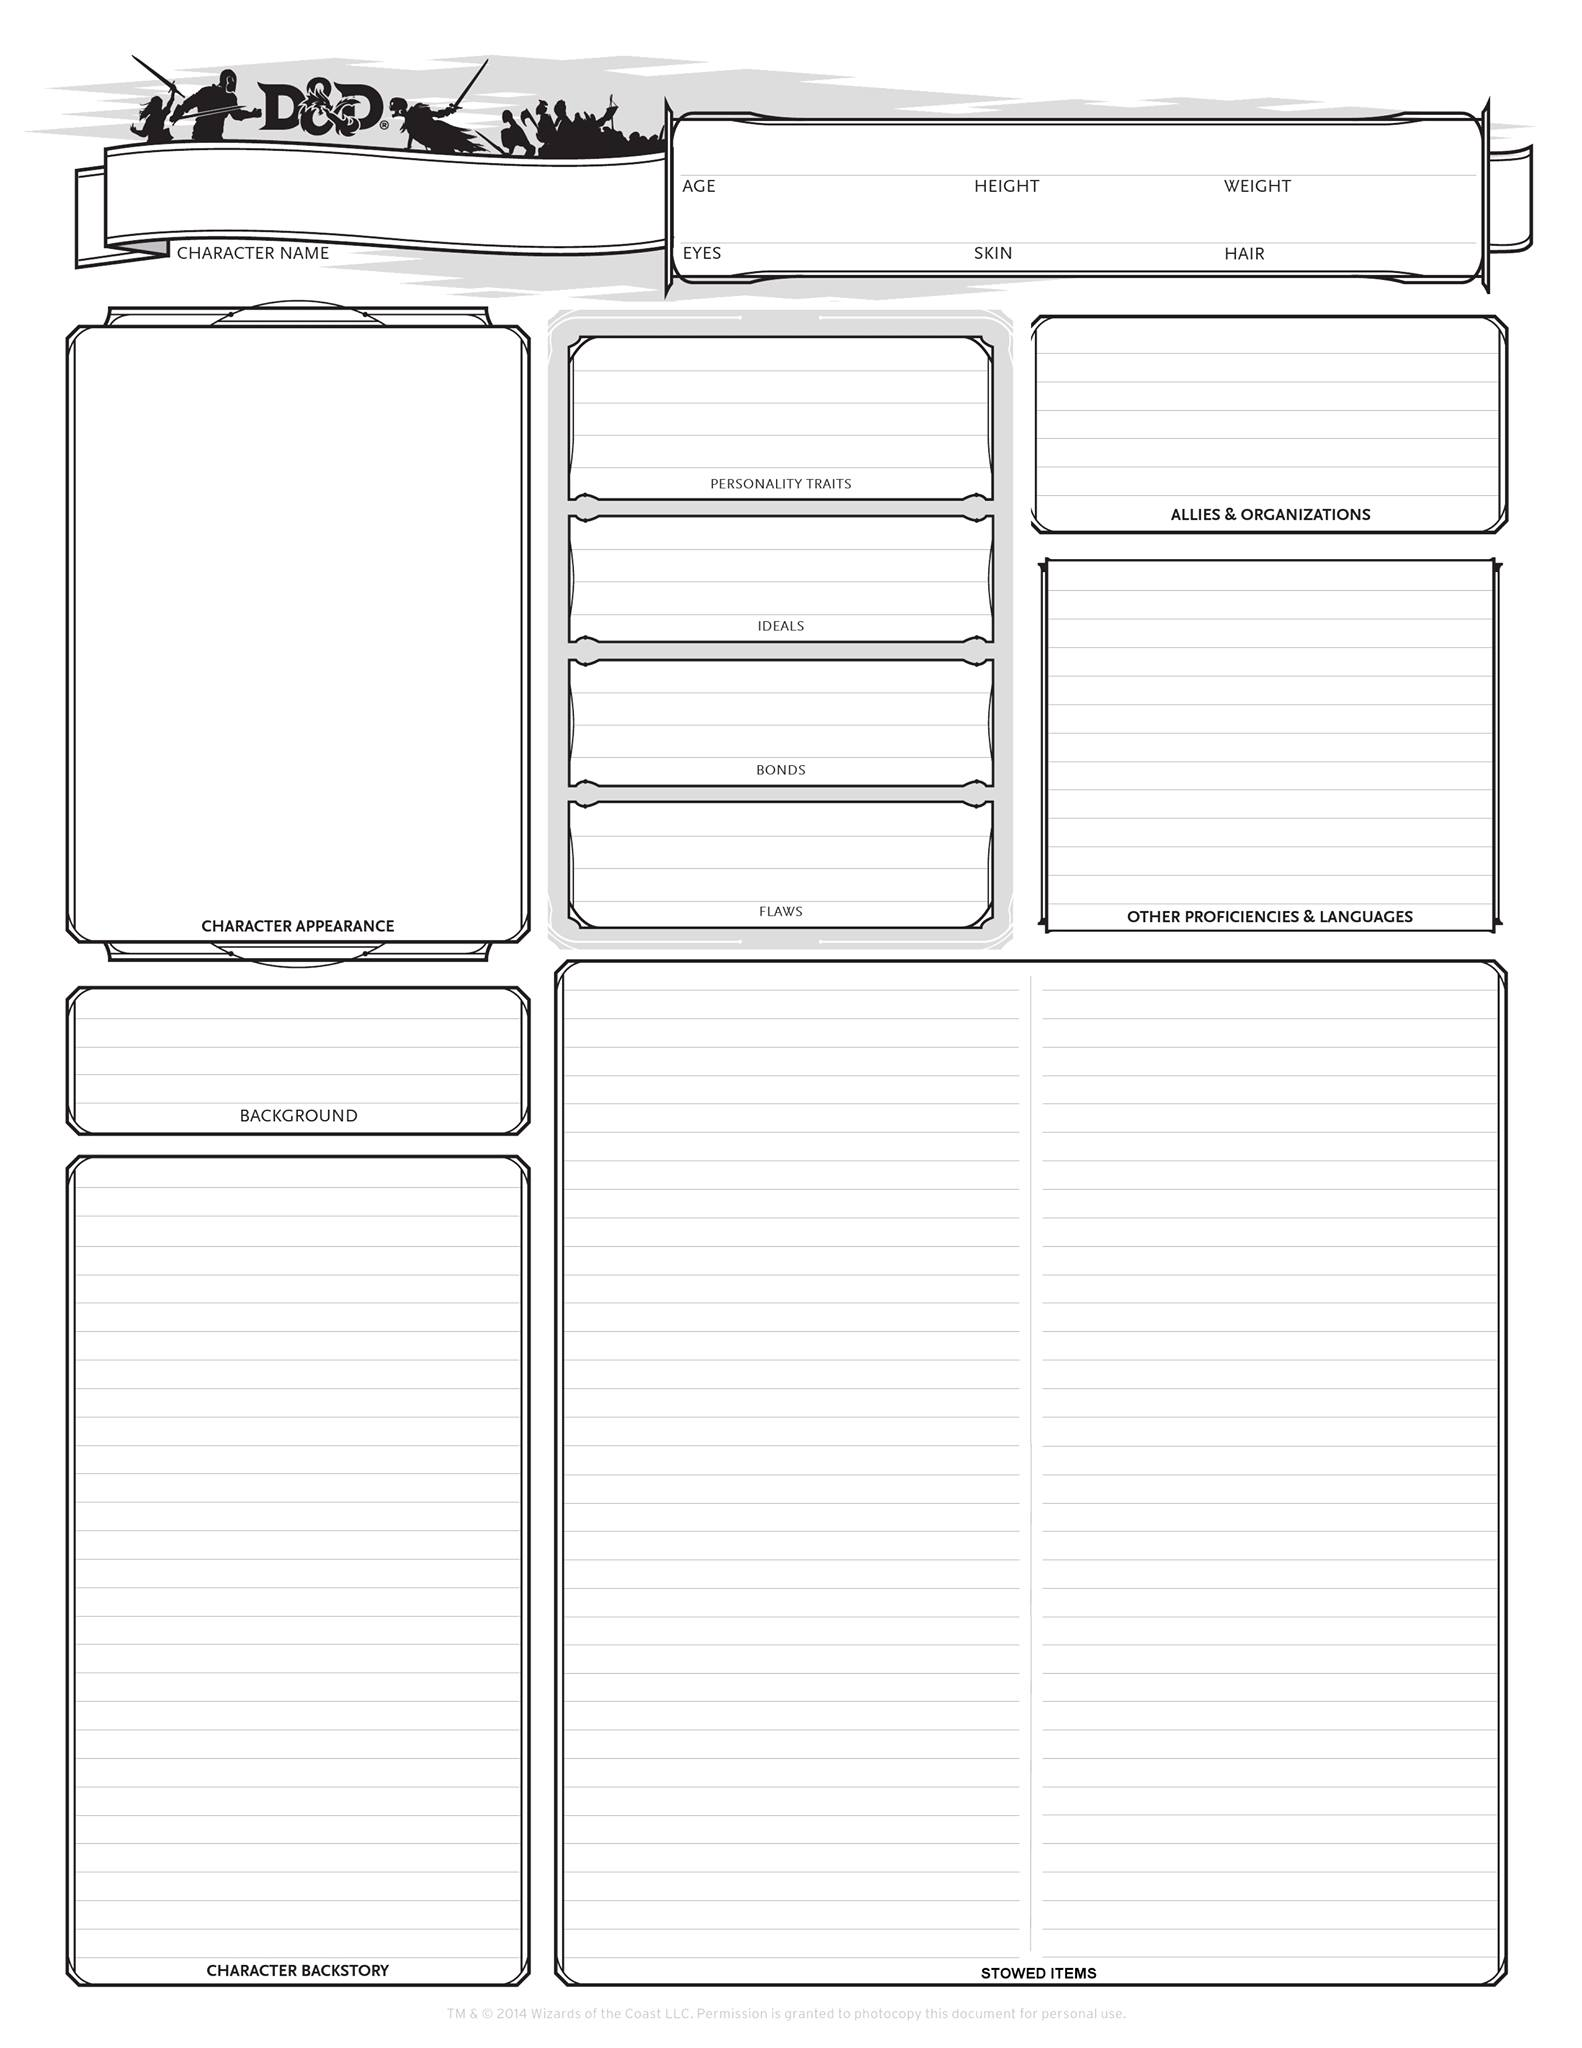 picture relating to 5e Character Sheet Printable referred to as DD 5e Substitute Personality Sheets